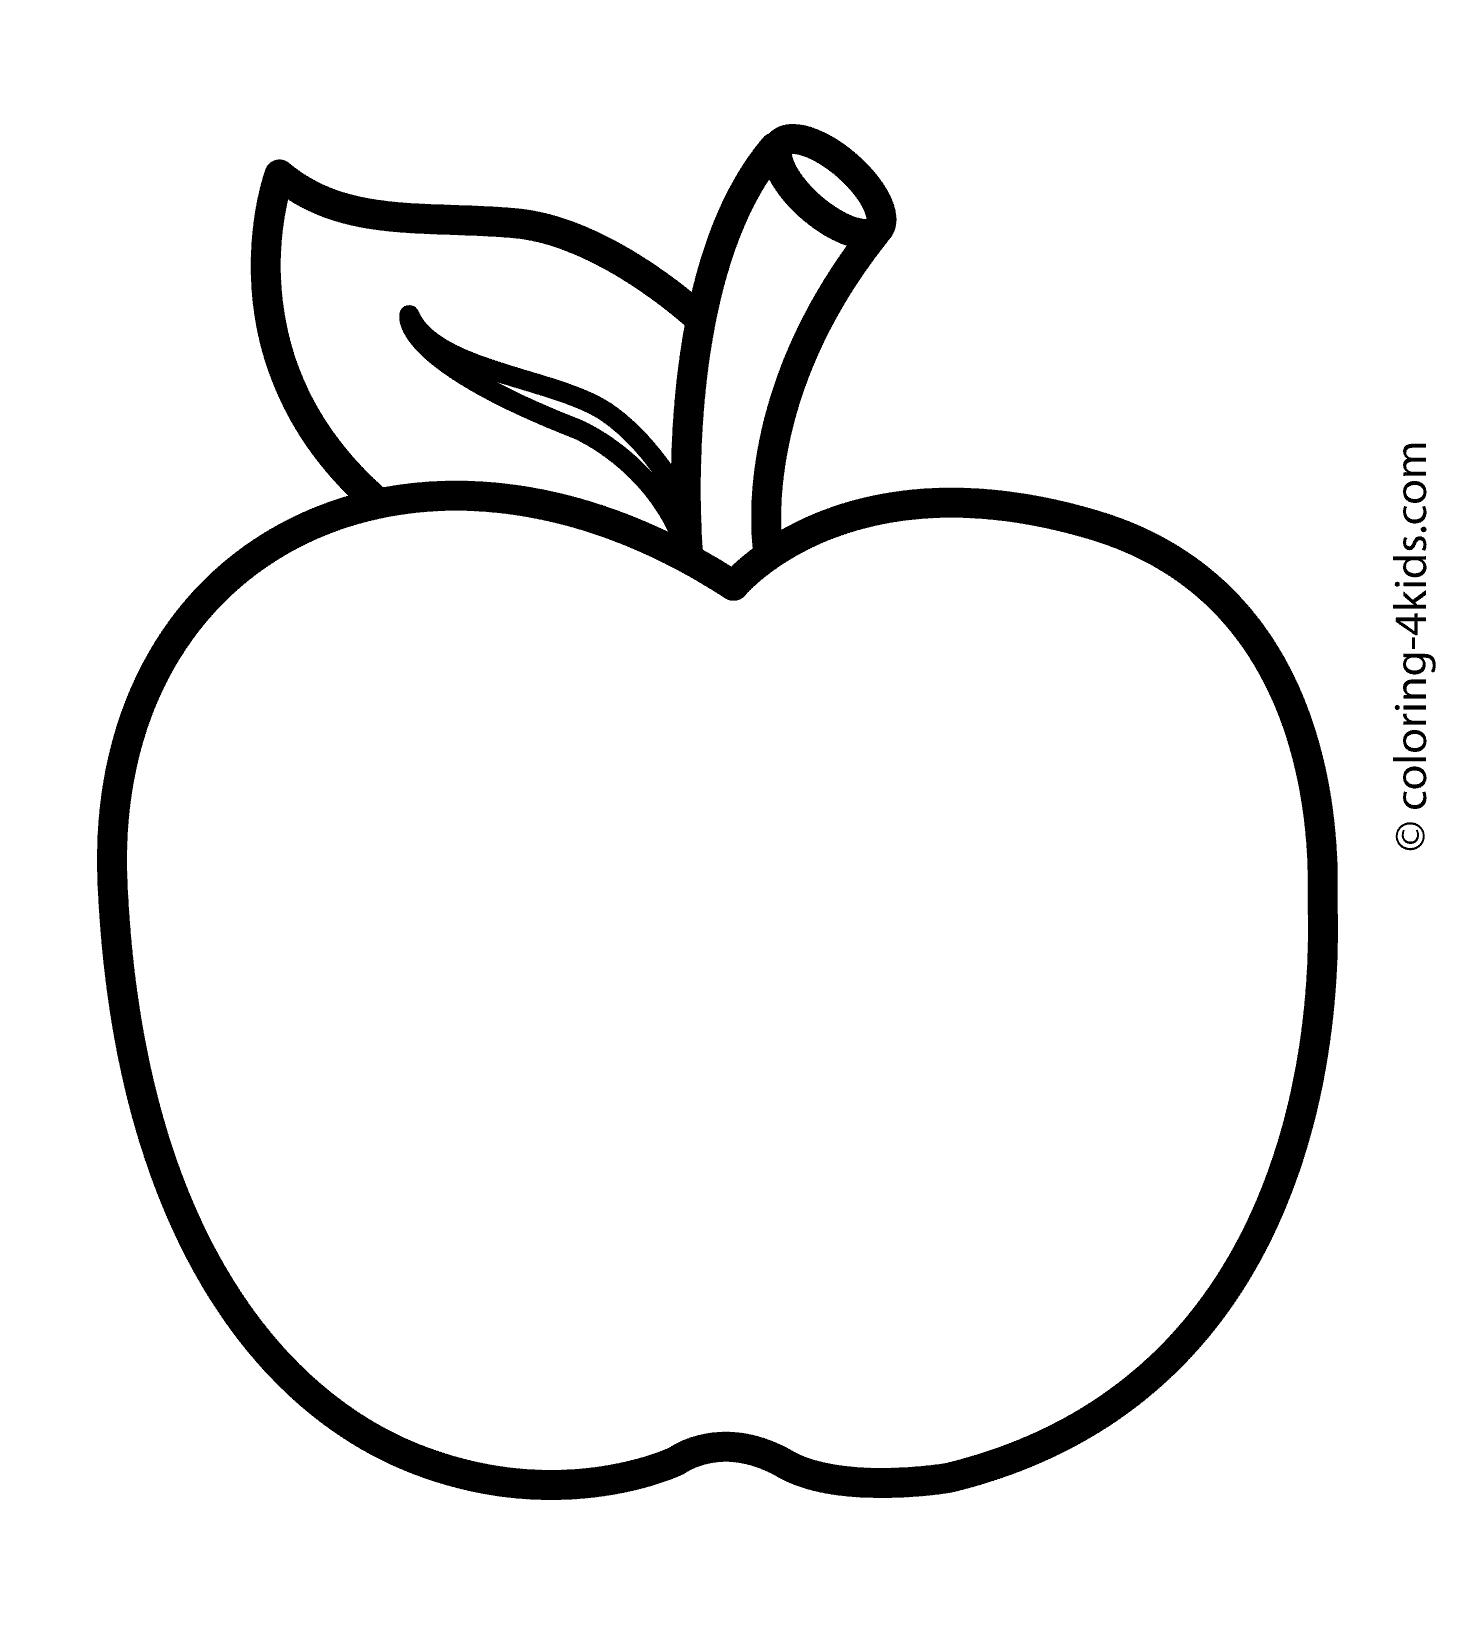 coloring page of an apple free printable coloring page apple picking clipart best coloring page of an apple